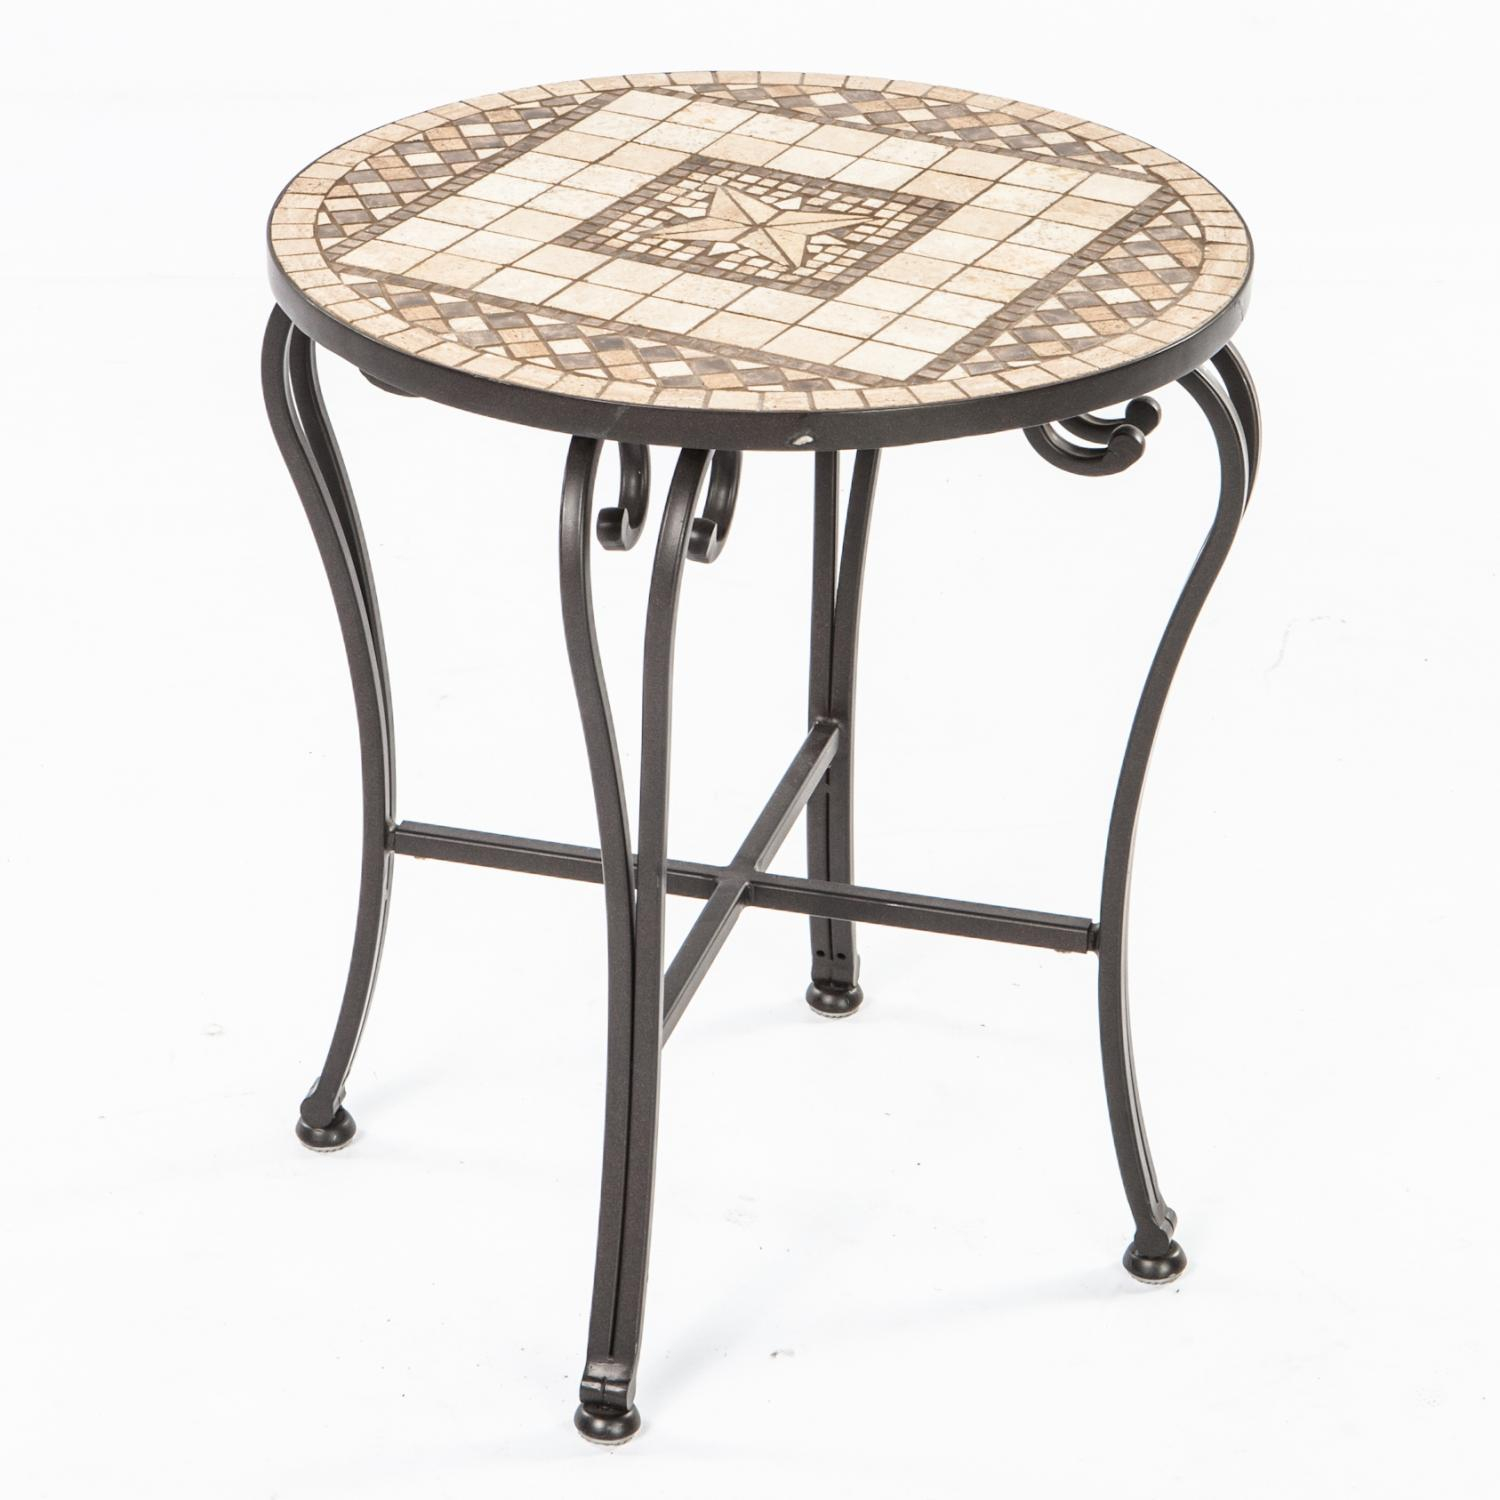 alfresco home basilica mosaic side table bbq guys outdoor for purple furniture live edge end white dining room and chairs weathered usb port wood lamp triangle sofa barn door